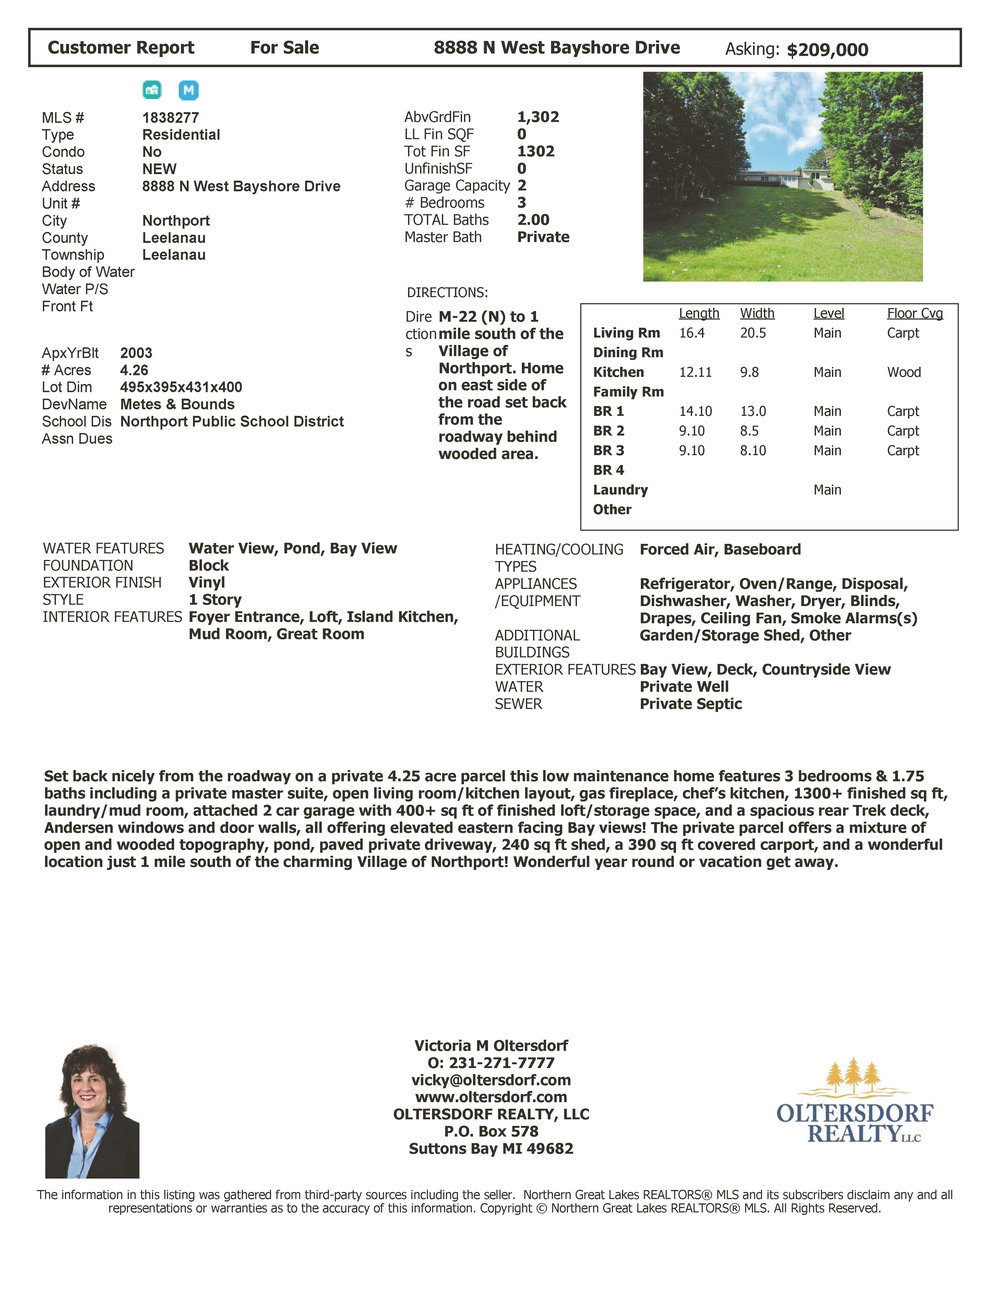 8888 NW Bay Shore Drive, Northport Marketing Packet - For Sale by Oltersdorf Realty LLC_Page_06.jpg